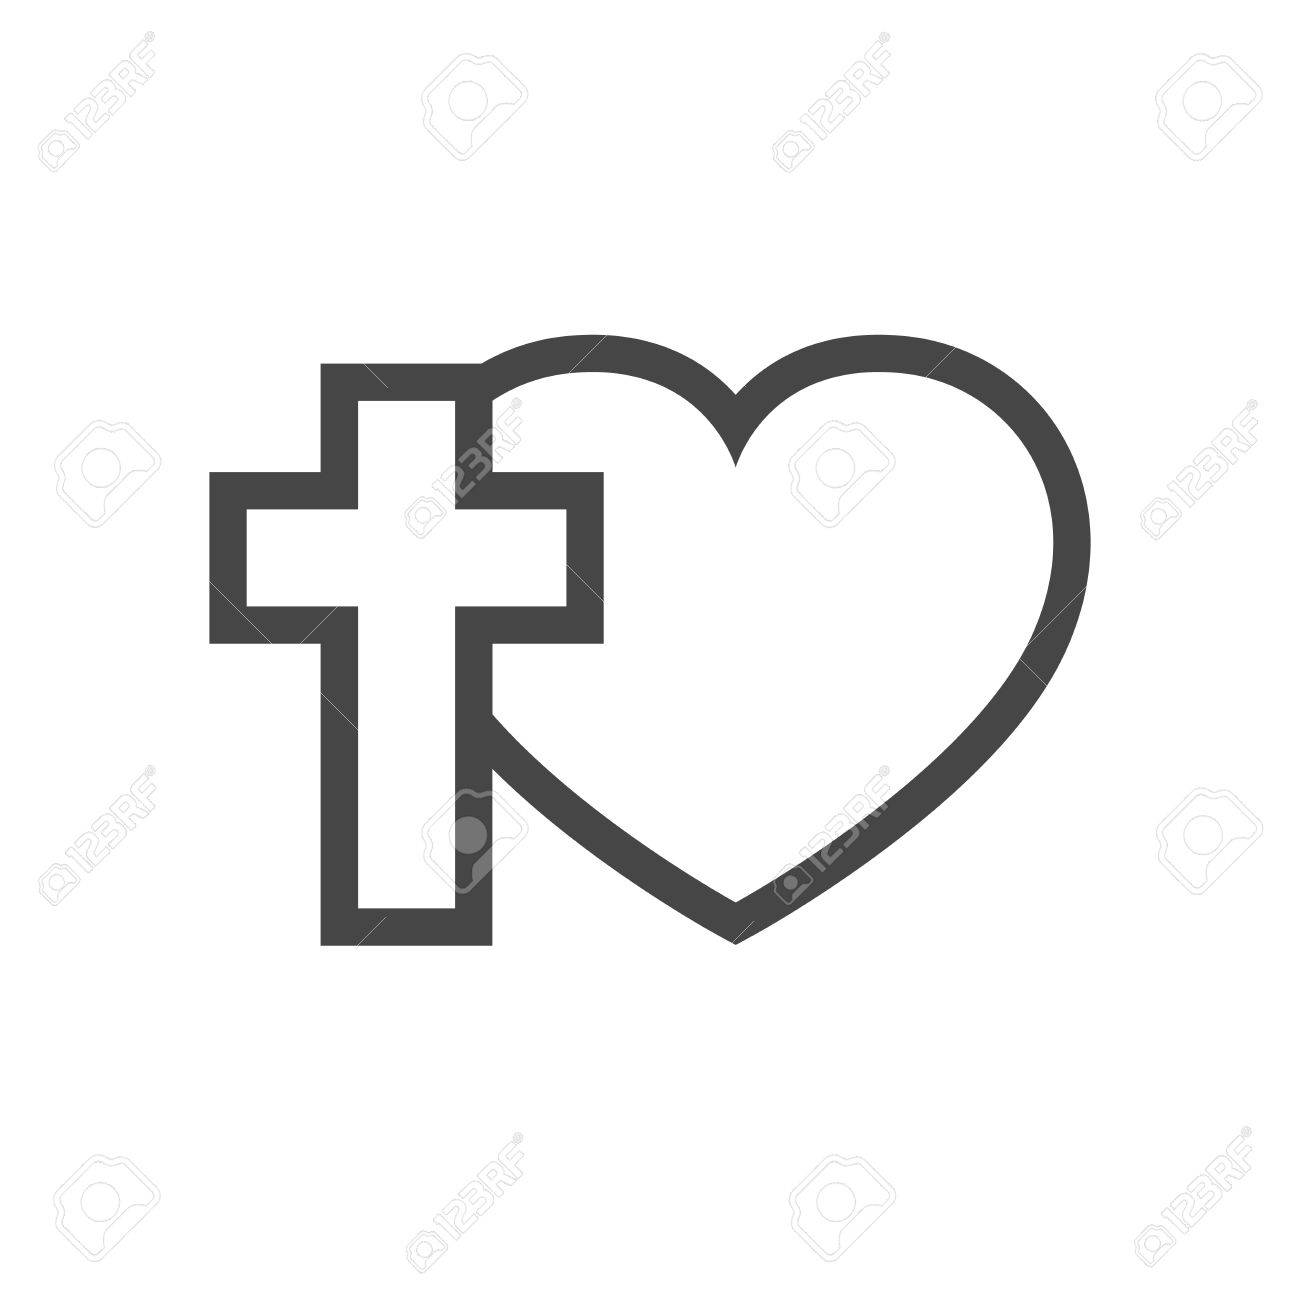 Christian cross and silhouette of heart. Gray symbol of christian...